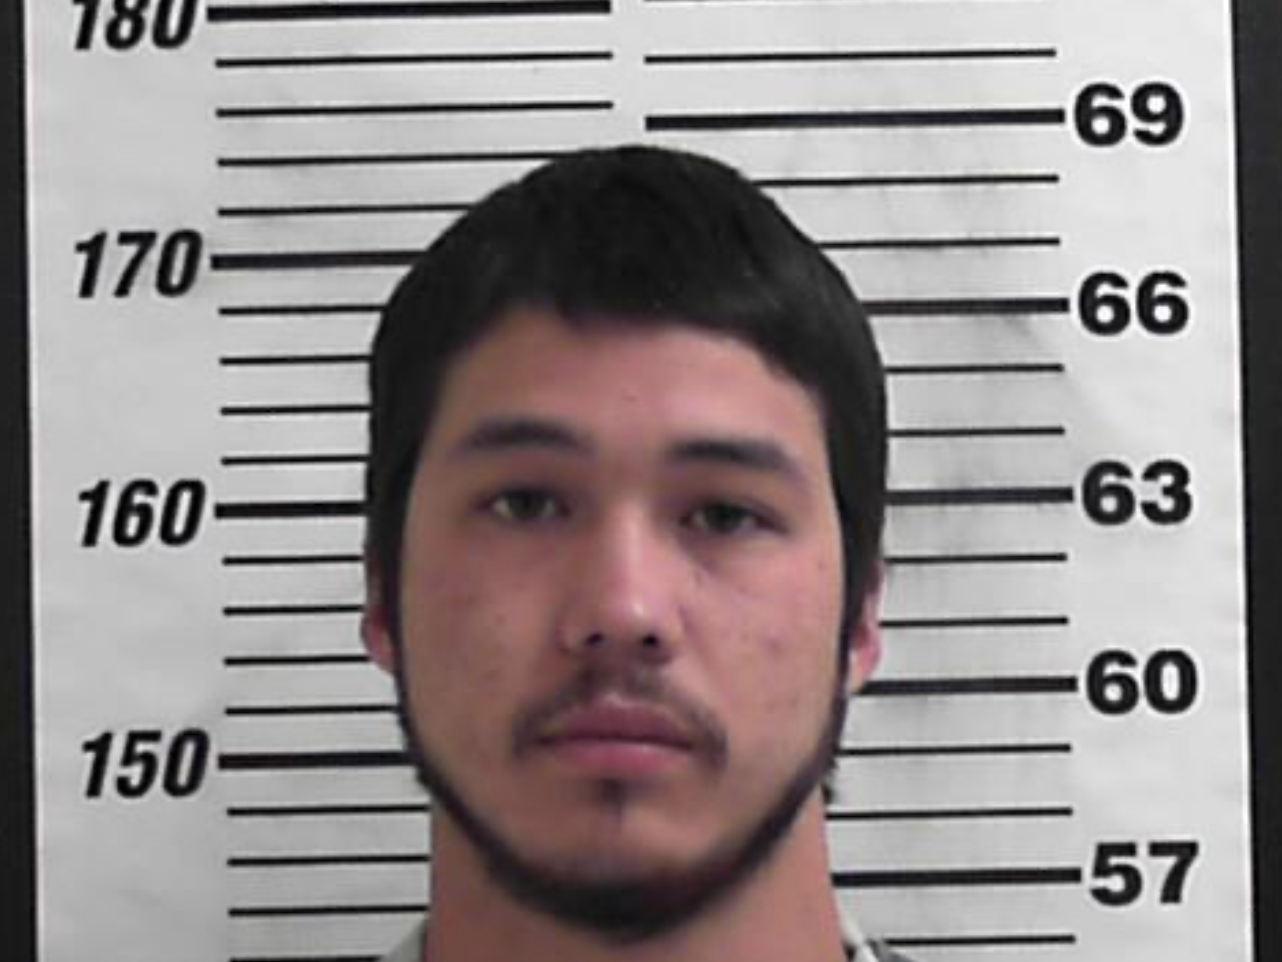 Utah man faces murder charge after allegedly stabbing Tinder date in his home thumbnail